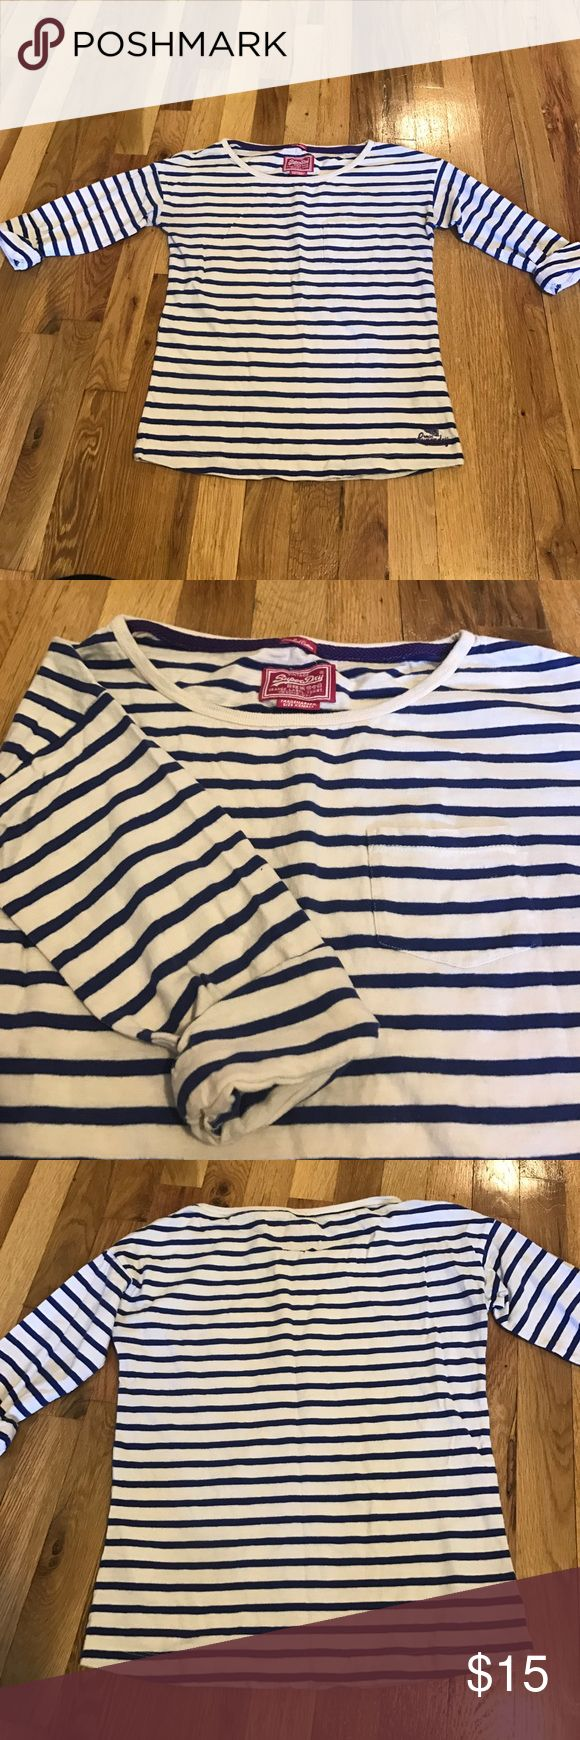 SUPERDRY 3/4 Sleeve Women's Striped Tee Navy/White Superdry HIGH QUALITY Striped Tee in Navy/White (almost beige). Half to 3/4 sleeve with built-in roll-up. Front pocket. Combed cotton. Women's US XS - *LIKE NEW!* Superdry Tops Tees - Long Sleeve